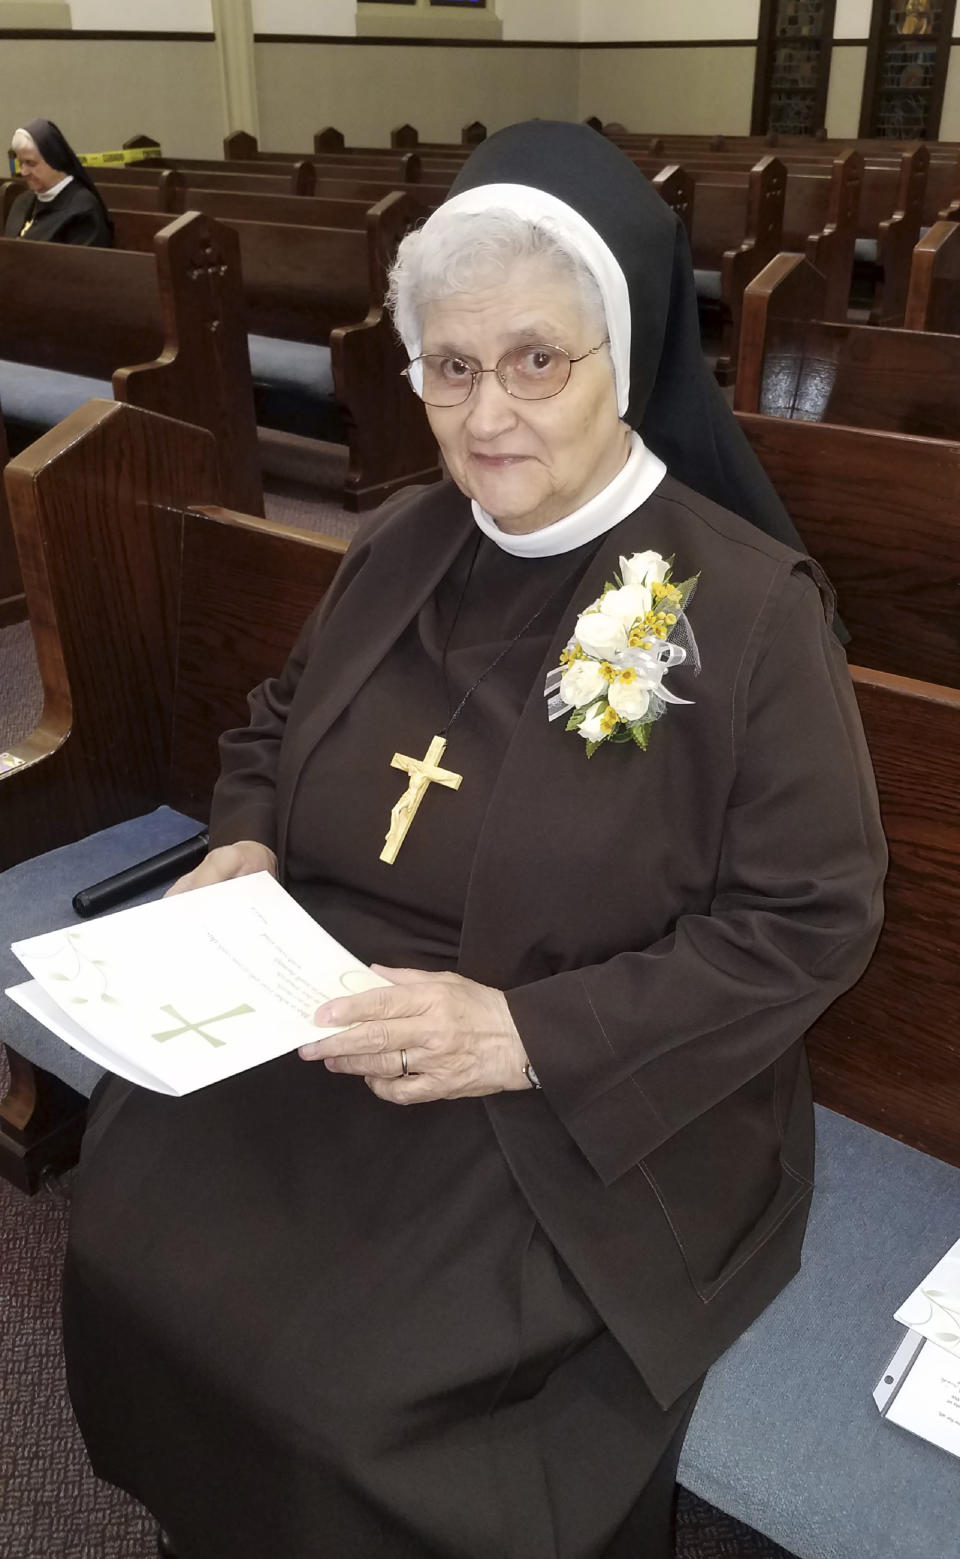 In this photo provided by Sister Mary Jeanine Morozowich, Sister Mary Evelyn Labik is recognized for her 60 years with the Felician Sisters of North America, in Greensburg, Pa., on Oct. 4, 2020. Labik contracted the coronavirus soon after and died. (Sister Mary Jeanine Morozowich via AP)